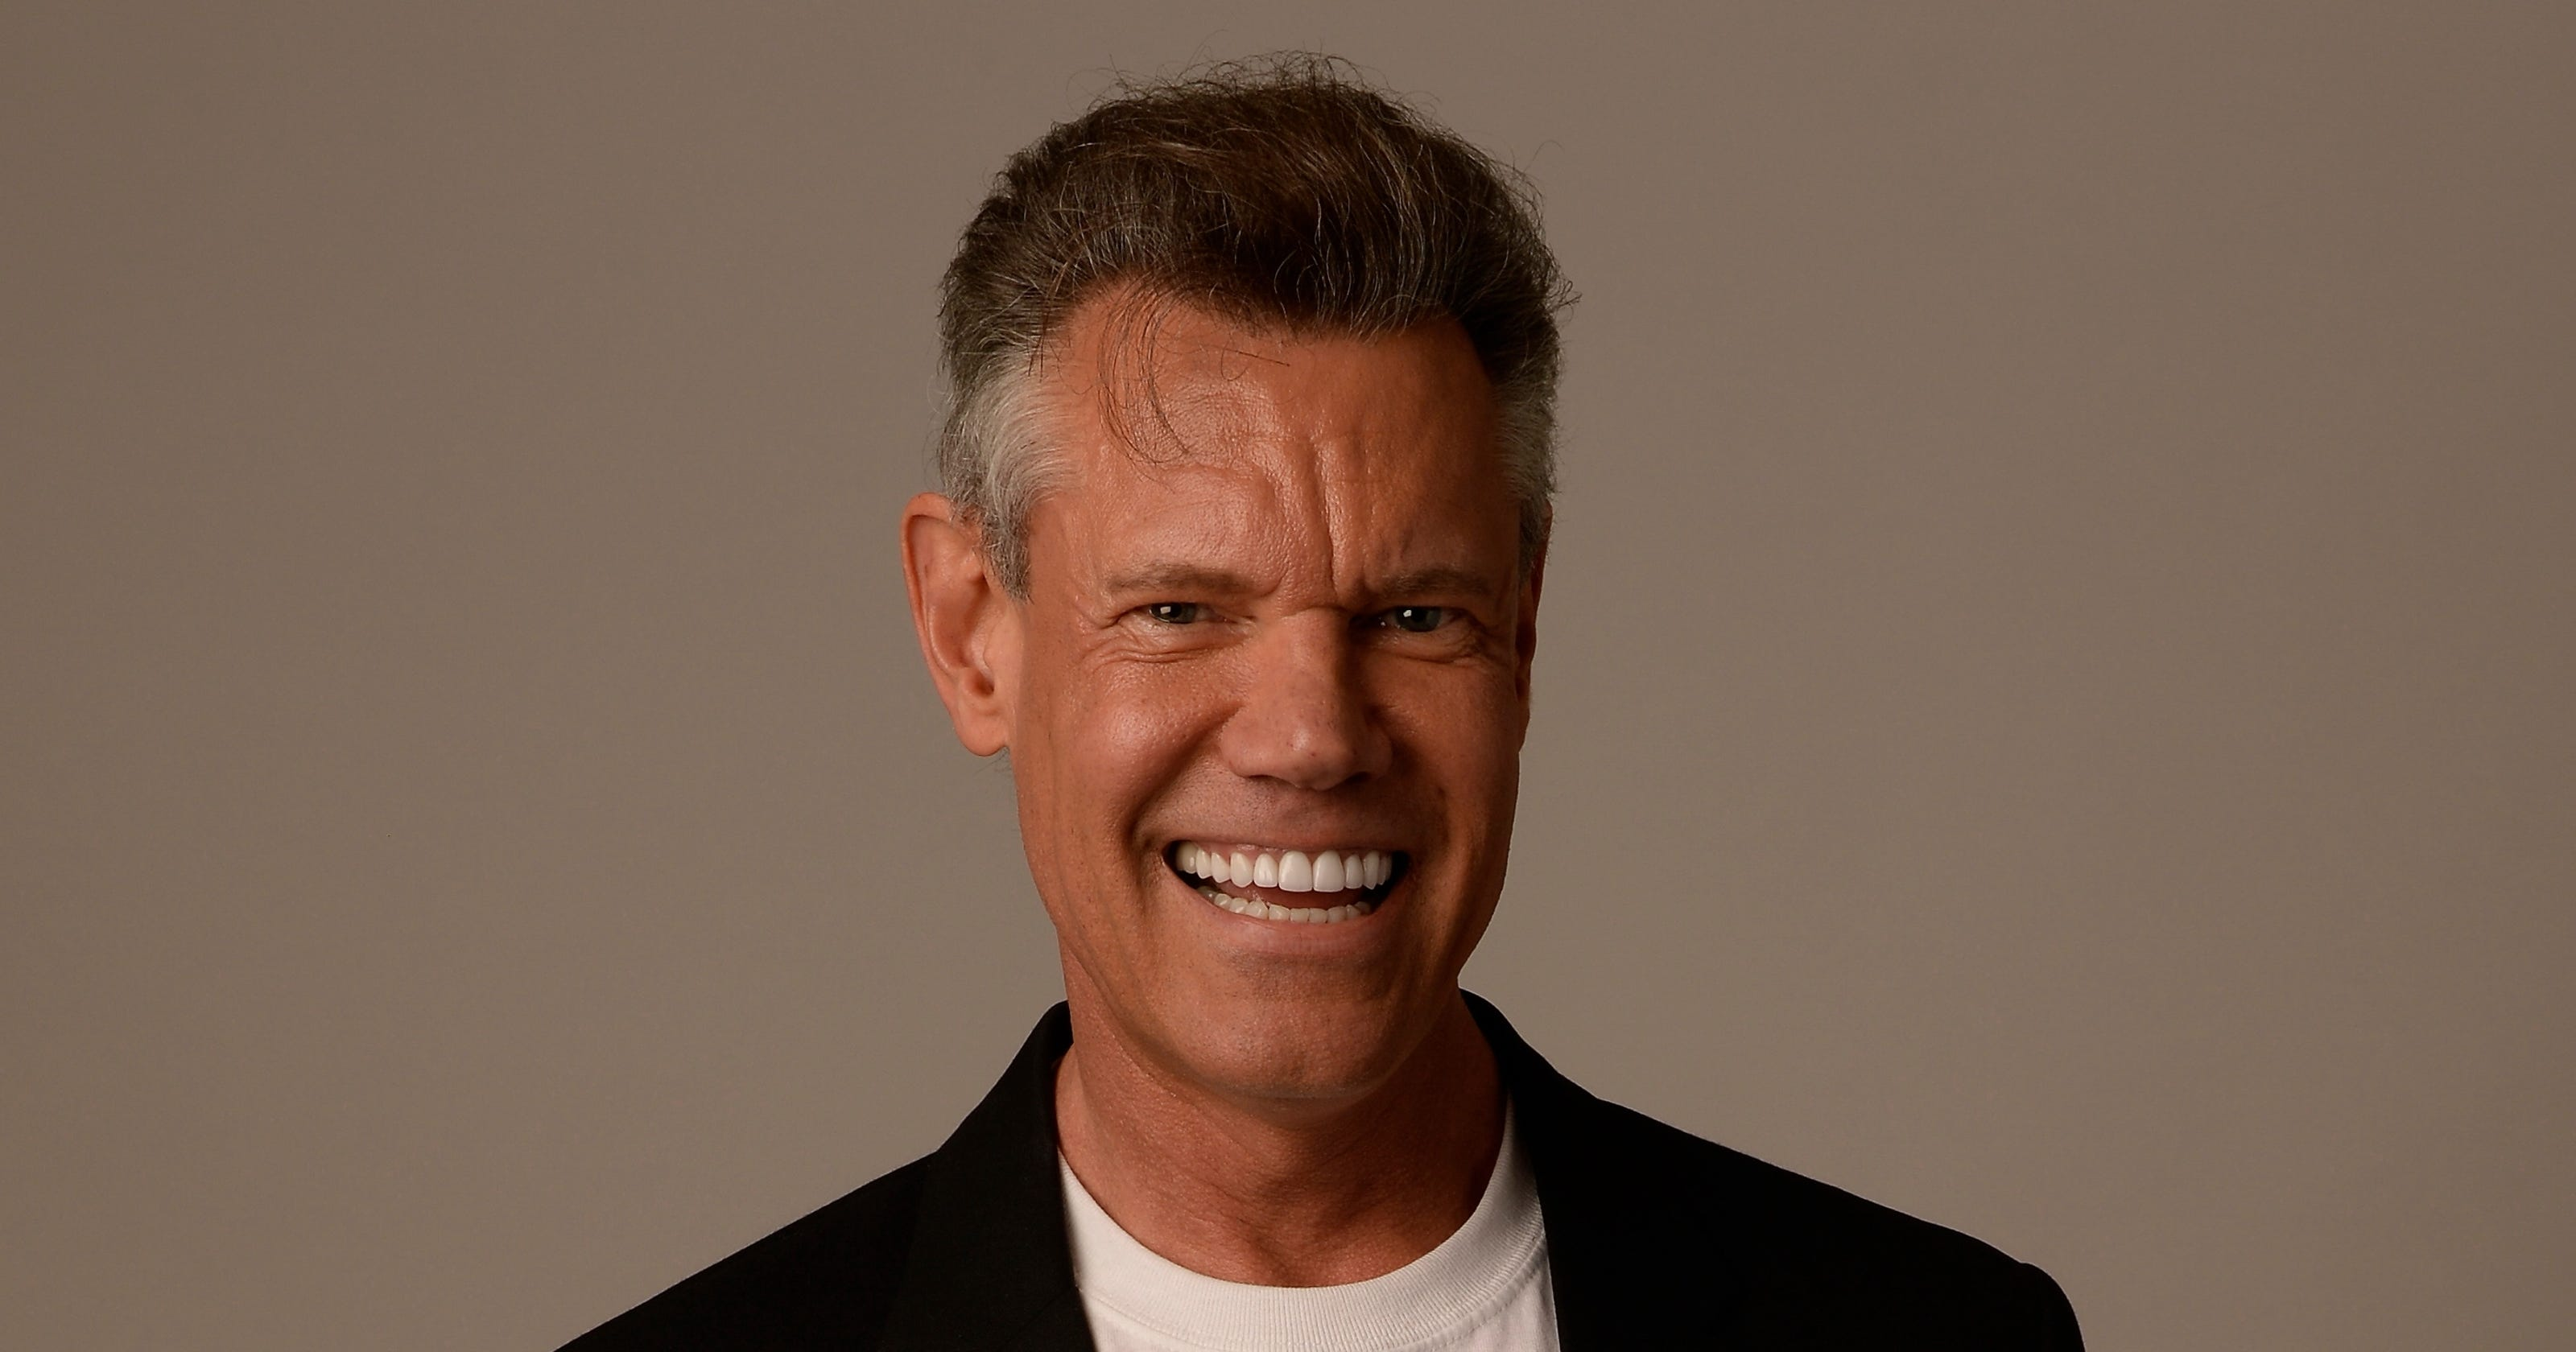 Randy Travis Today >> Randy Travis' heart trouble could be life-threatening